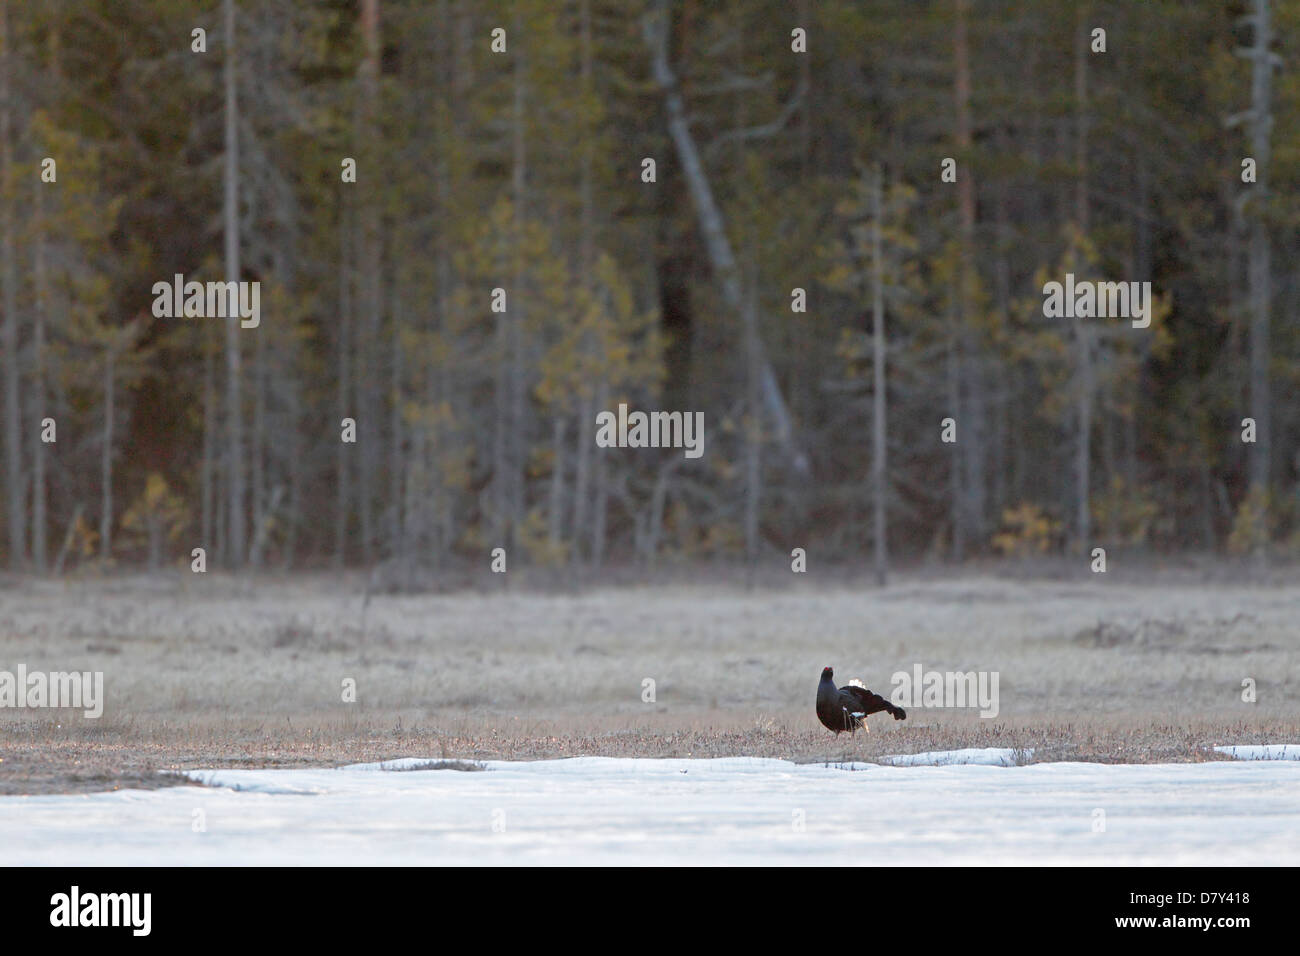 Male Black Grouse at a lek in Finland - Stock Image